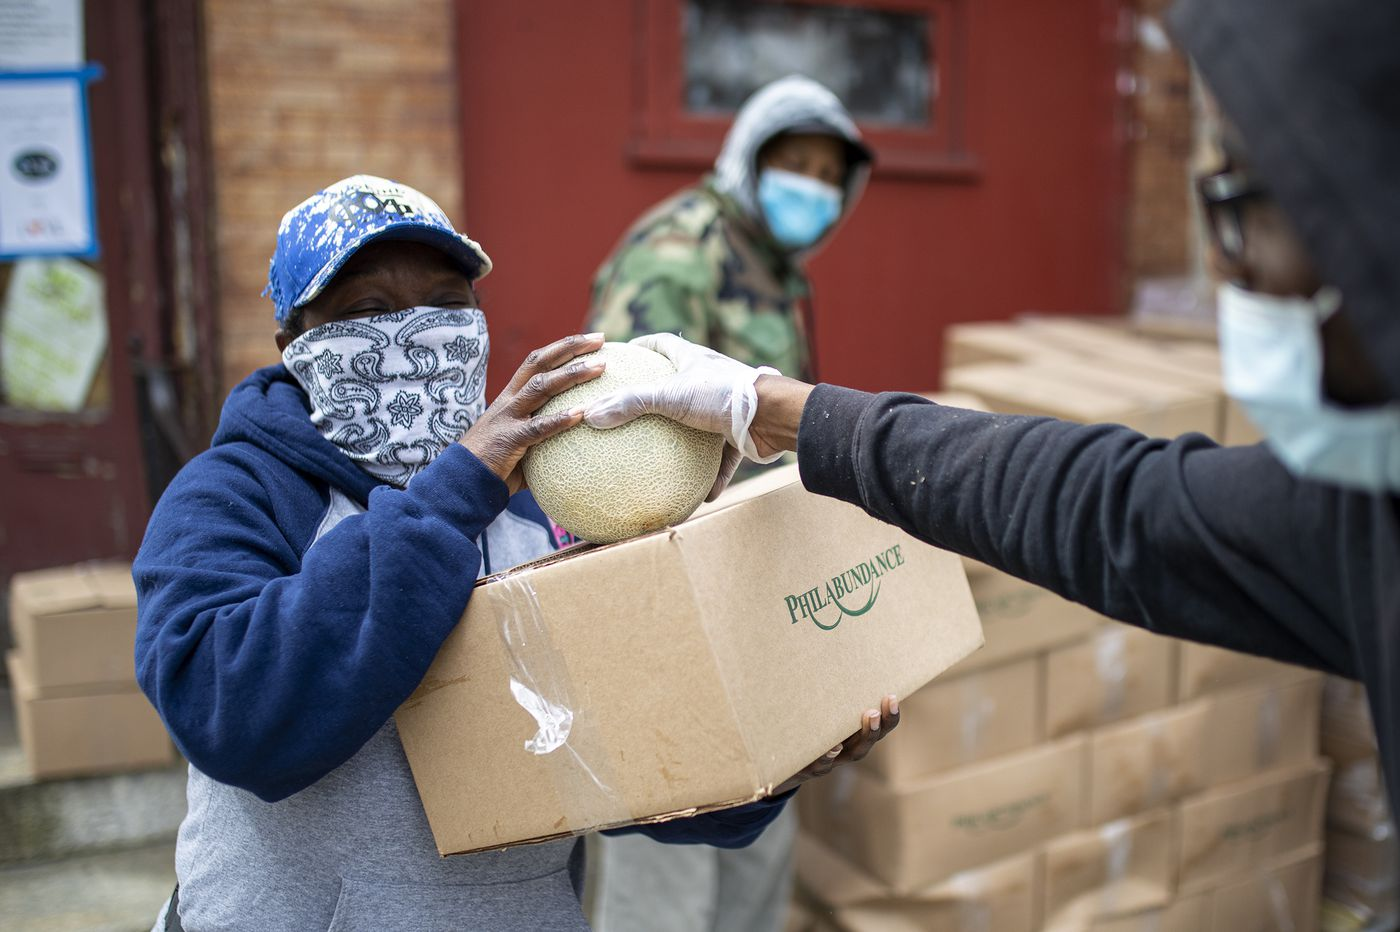 Charitable organizations can't be the only ones working to solve hunger and housing crises | Opinion